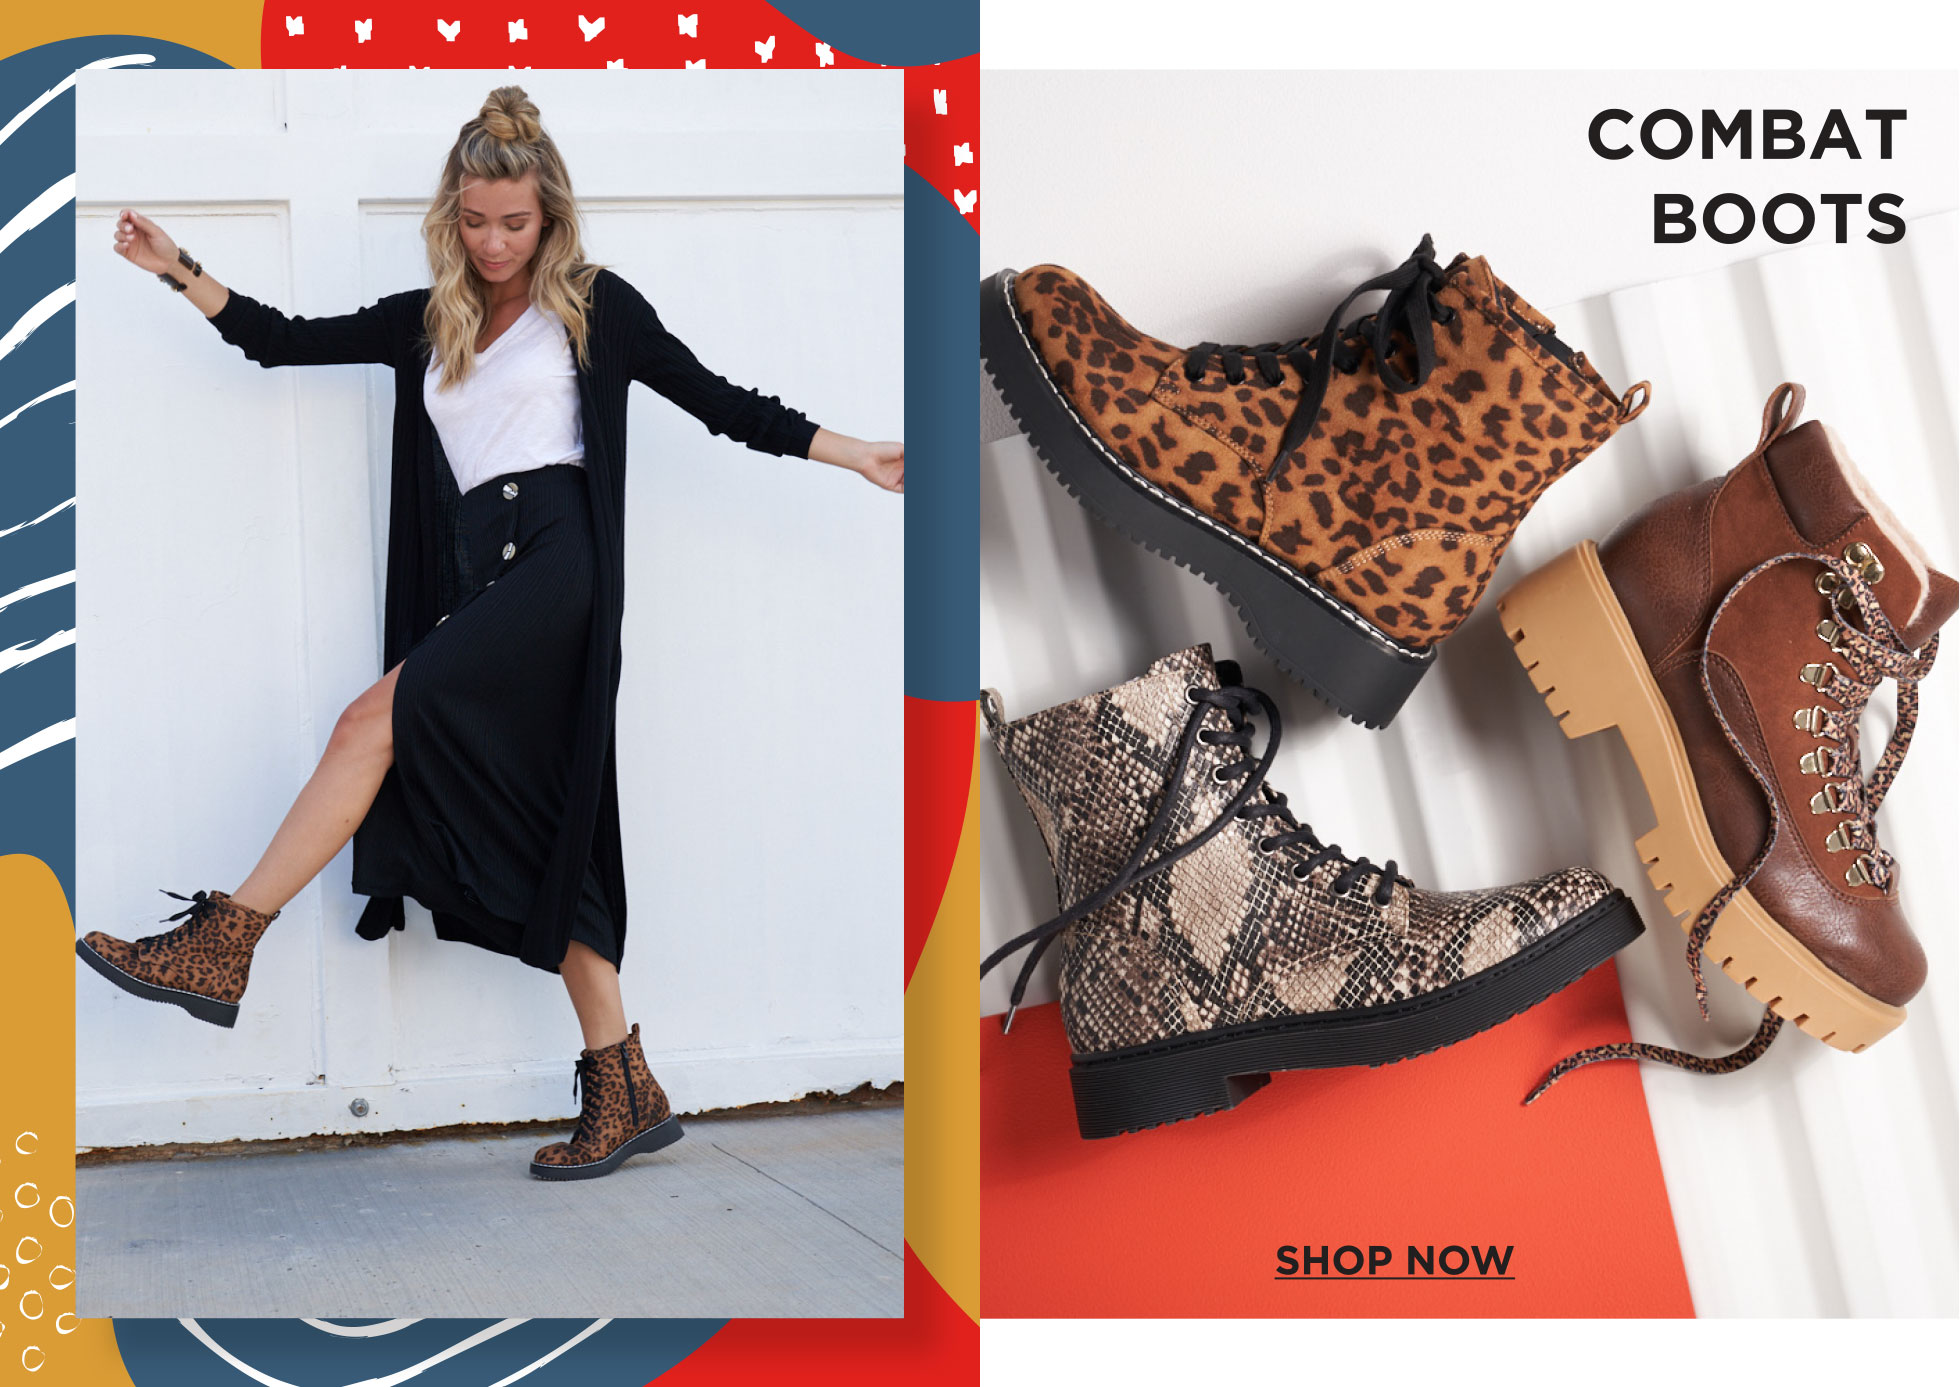 Xappeal, Madden Girl, Combat Boots: Shop Now